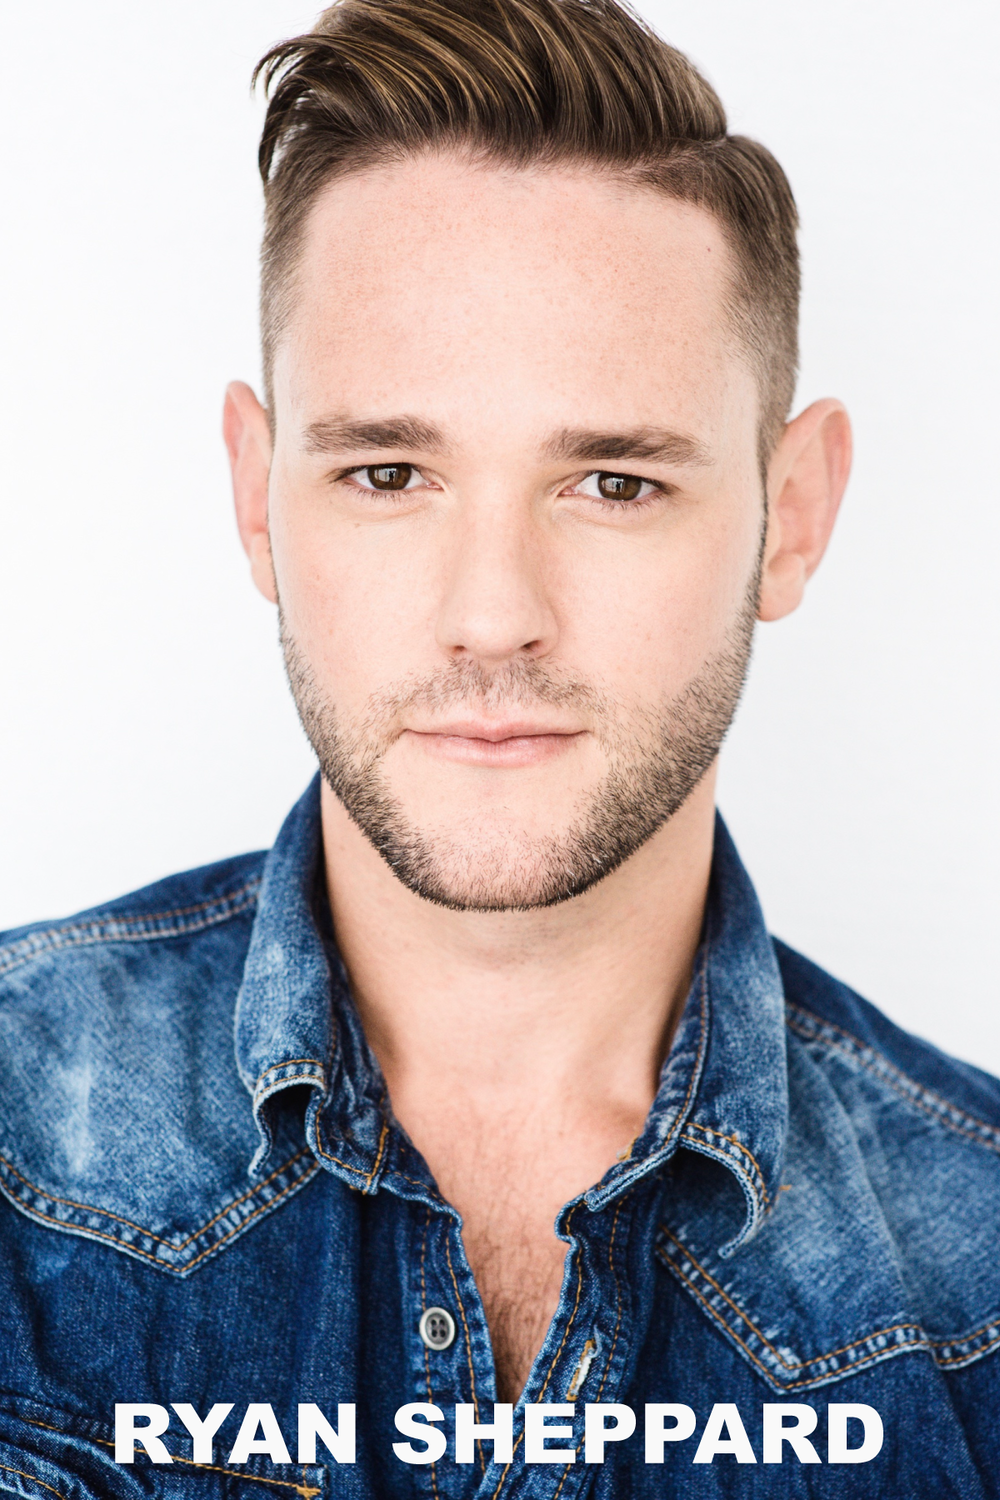 Ryan-Sheppard-(Singer,-Dancer,-Actor).png